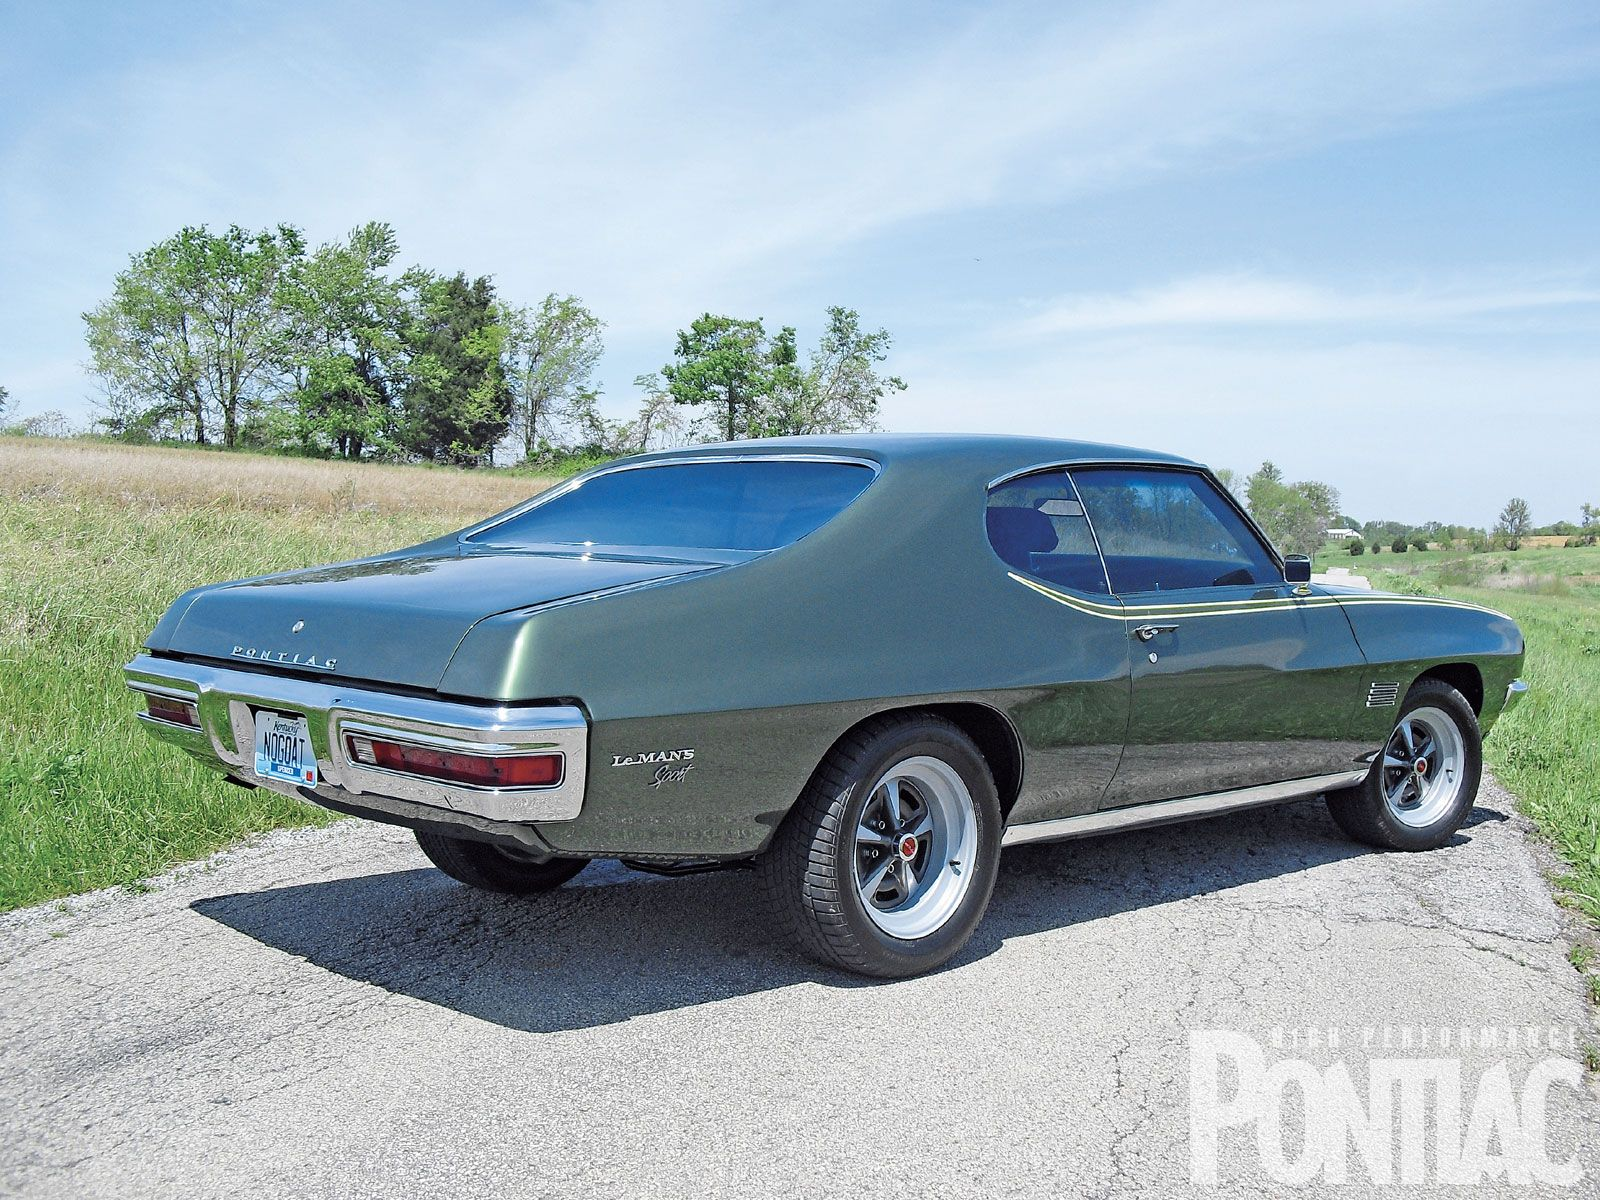 small resolution of 1970 pontiac lemans sport mine had two tone paint with pin striping and a 427 engine it could fly